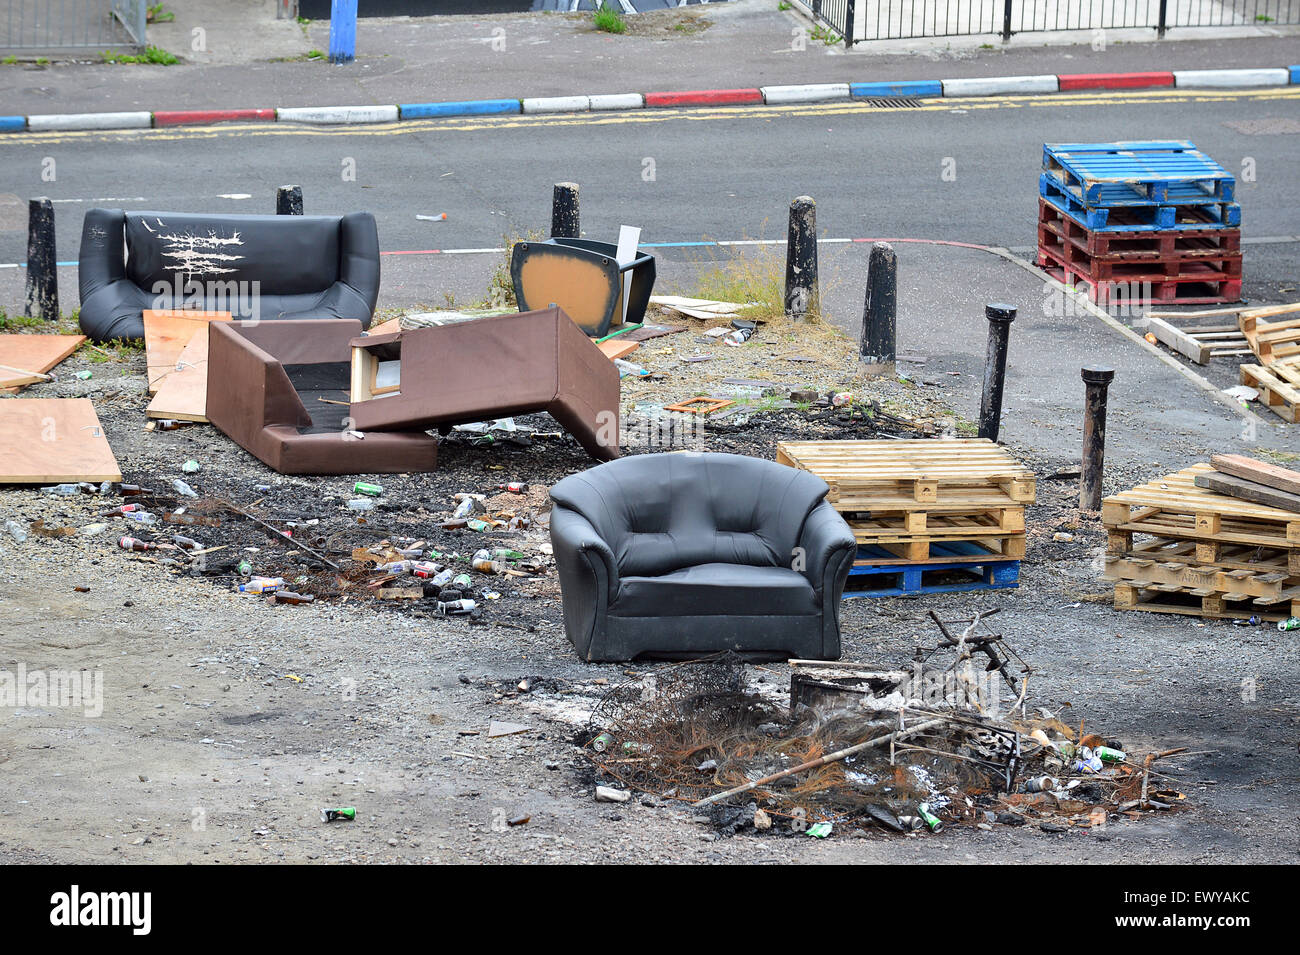 Rubbish at bonfire site in the Loyalist Fountain Estate, Londonderry (Derry), Northern Ireland. - Stock Image